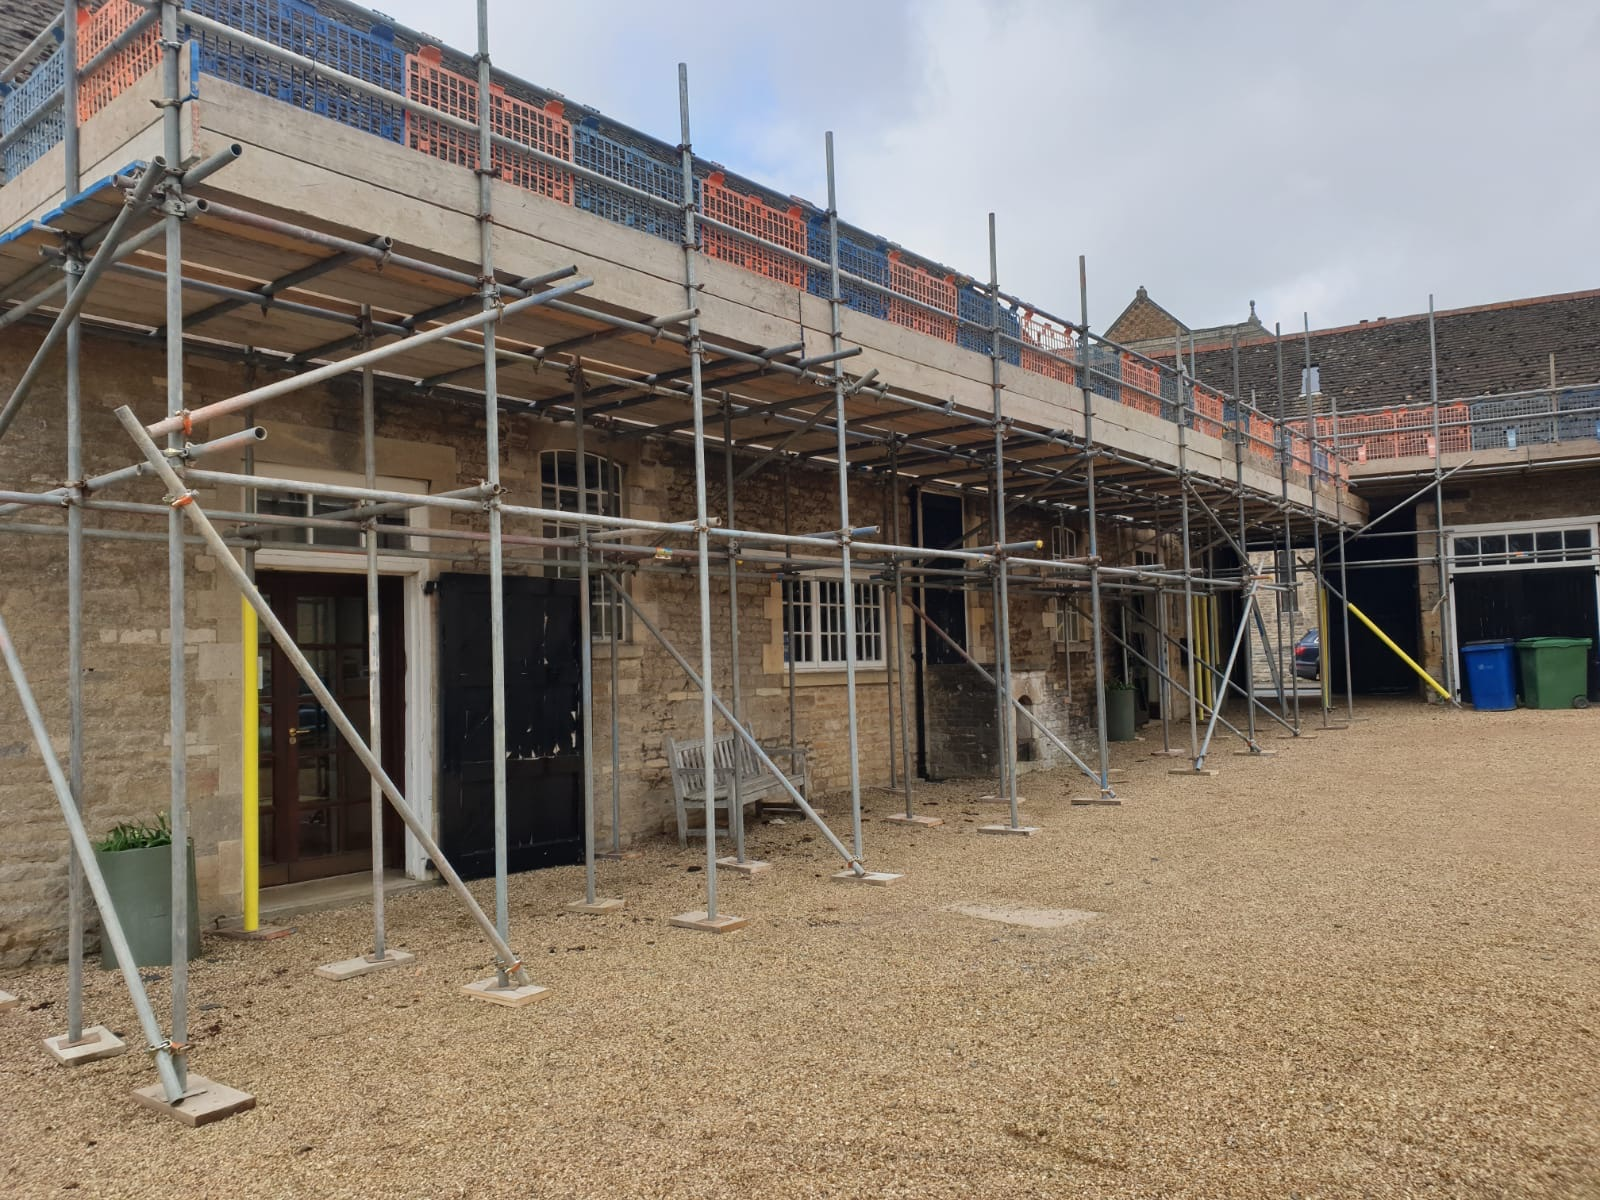 Earls Scaffolding - Independent Scaffolding Re-roofing - Oundle School - Commercial Scaffolding